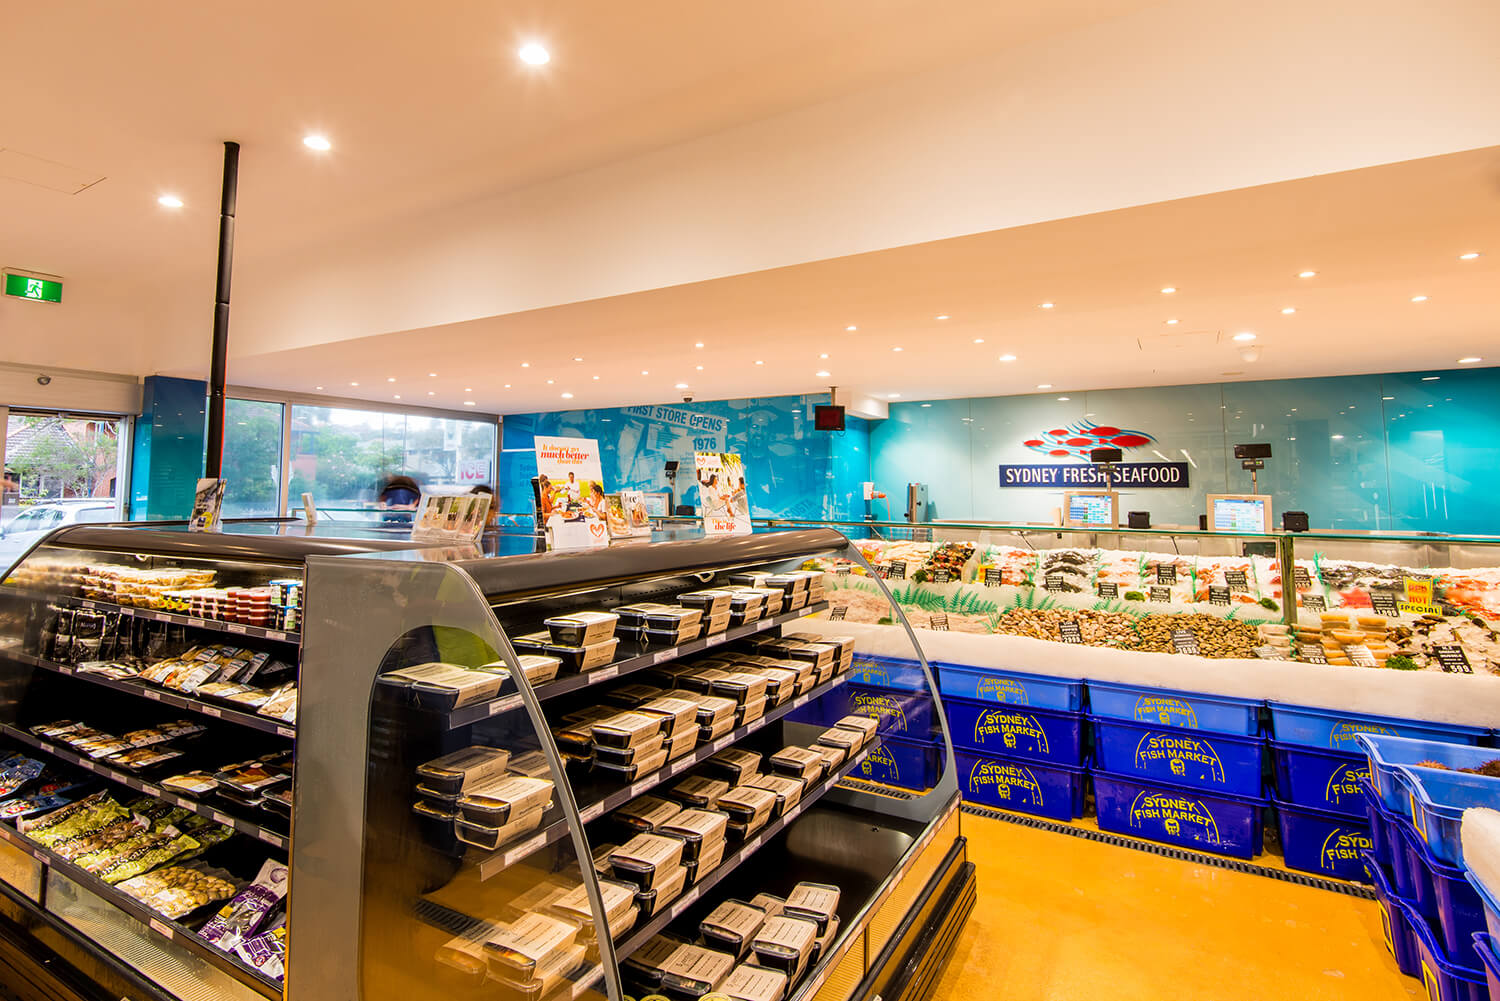 Commercial lighting design by Afterglow showing Harris Farms store seafood display